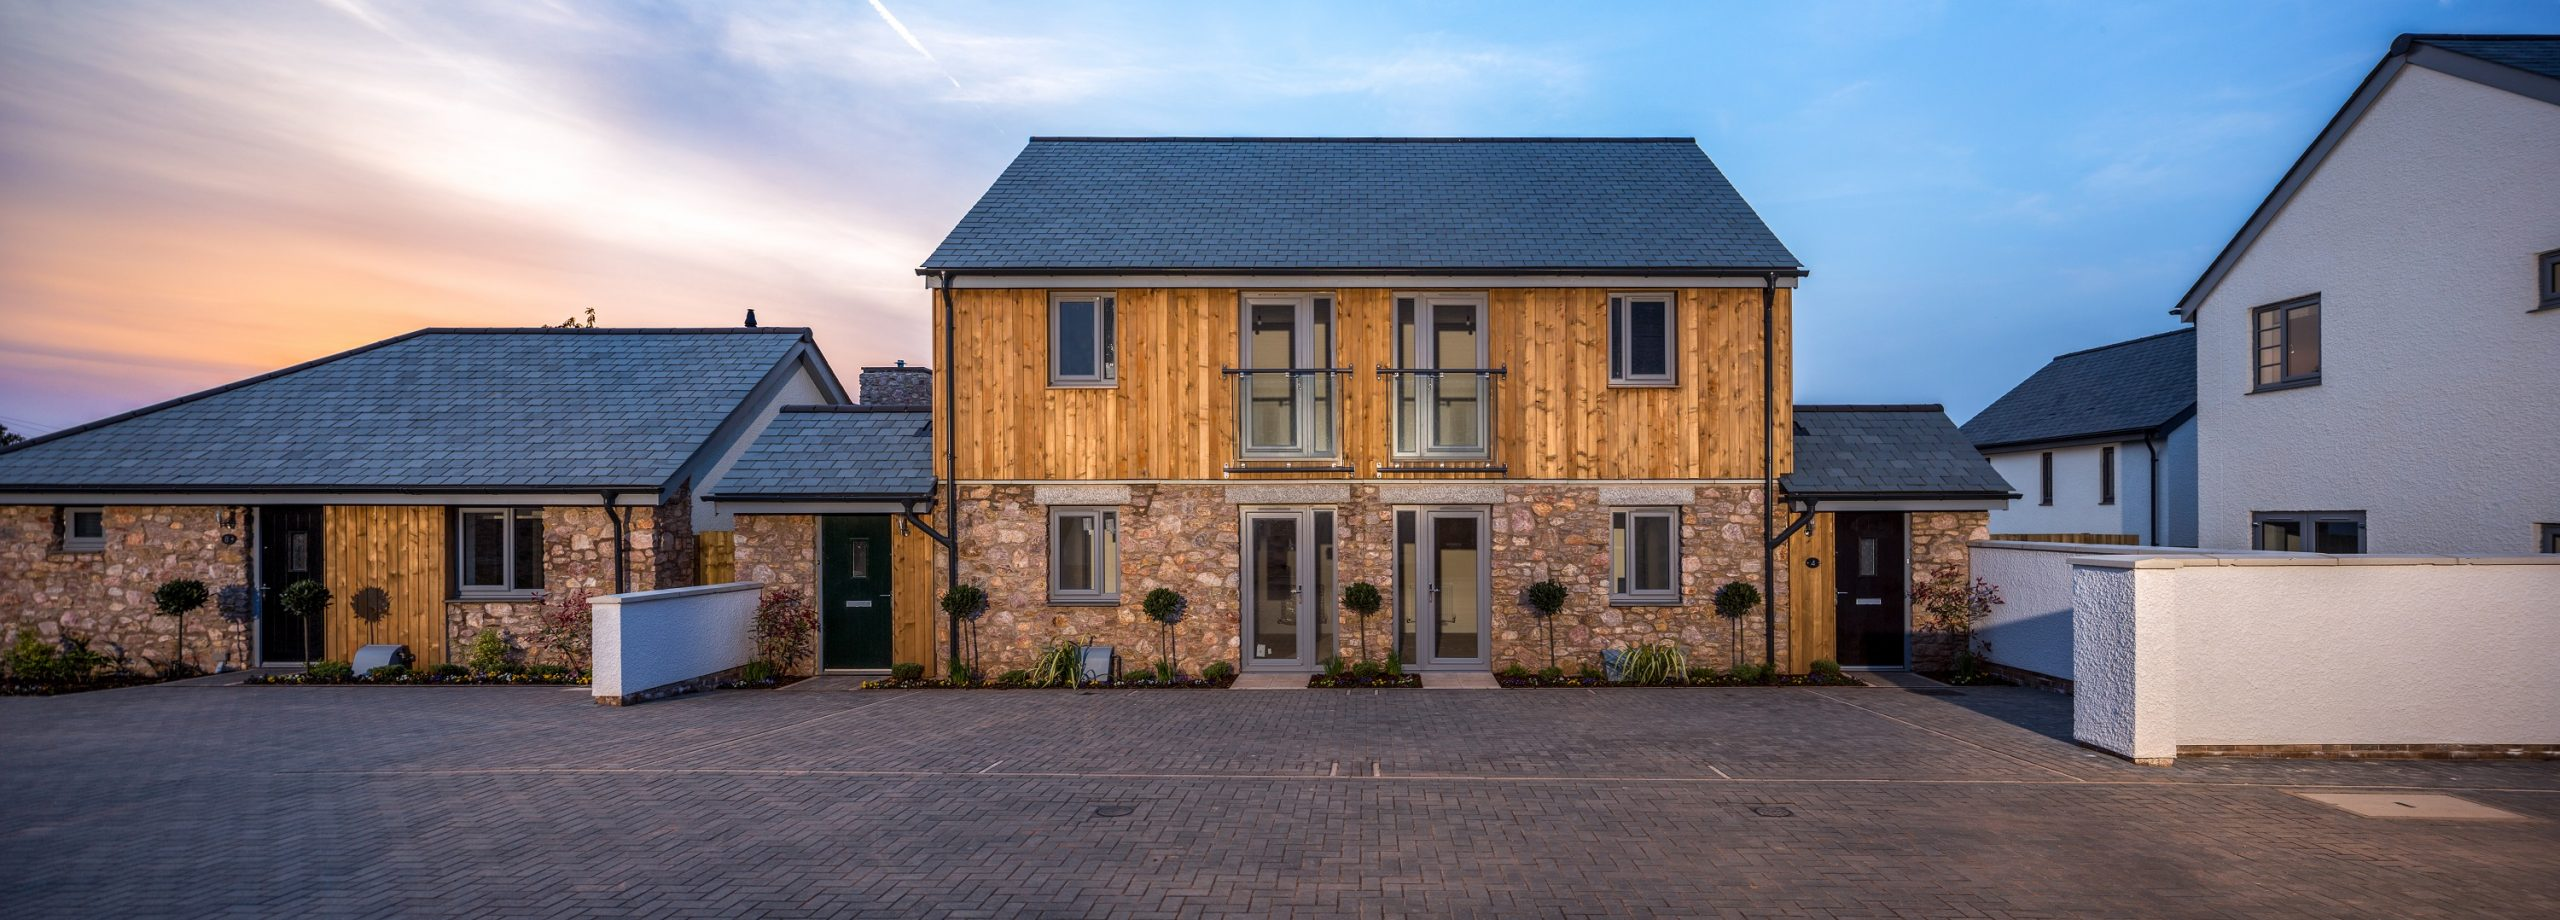 Cavanna Homes Crowned Housebuilder of the Year for Second Year Running